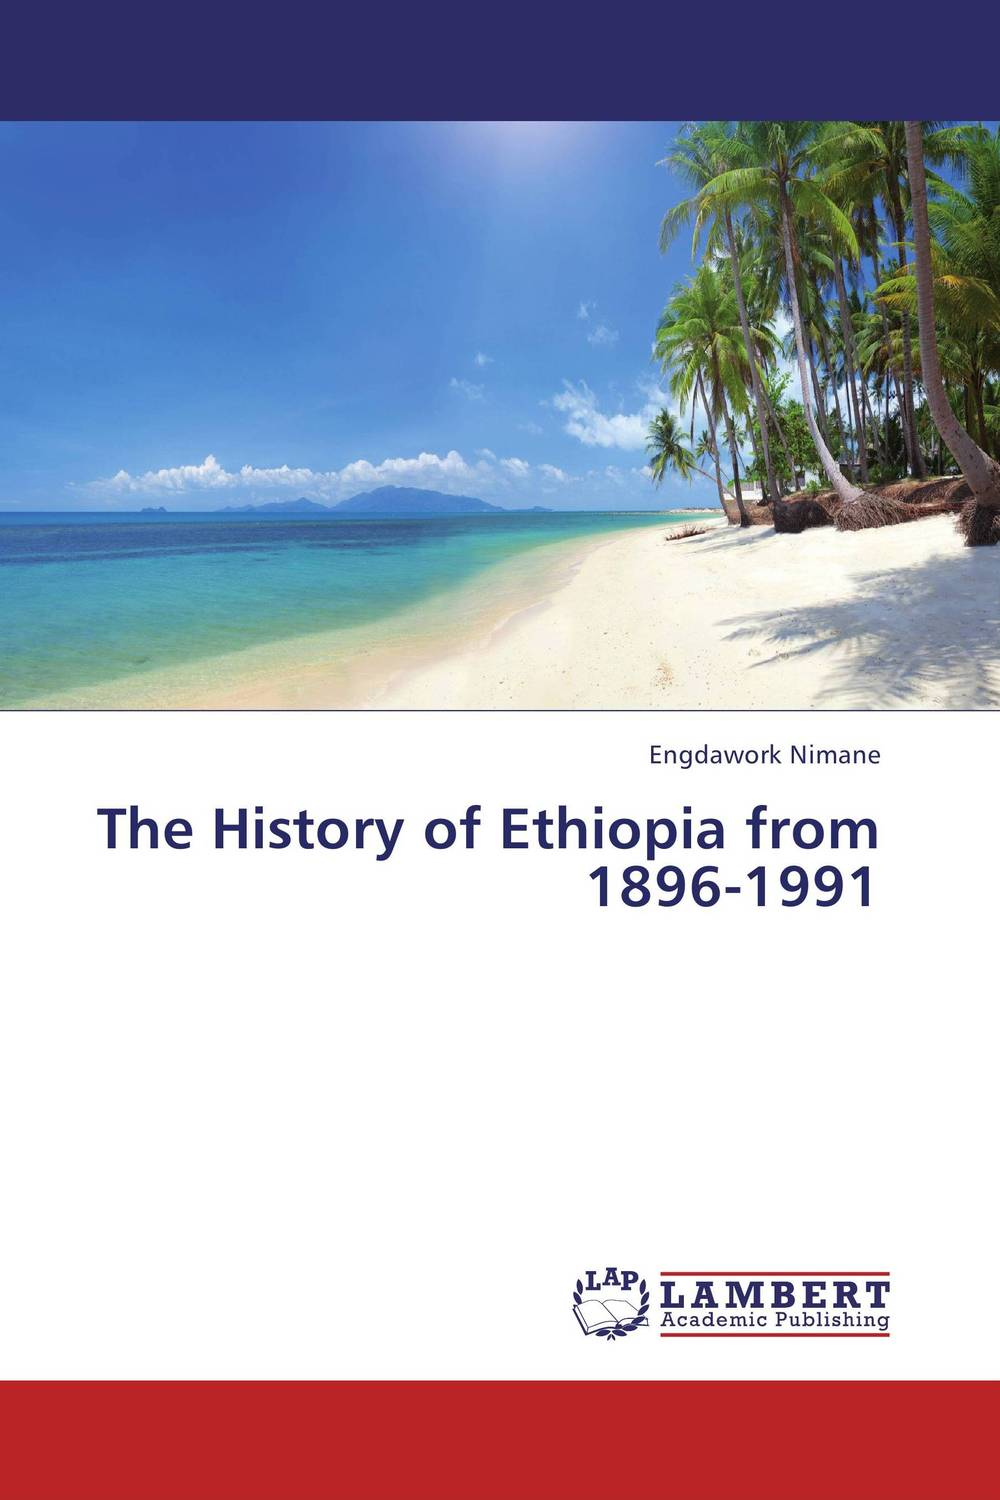 Фото The History of Ethiopia from 1896-1991 cervical cancer in amhara region in ethiopia